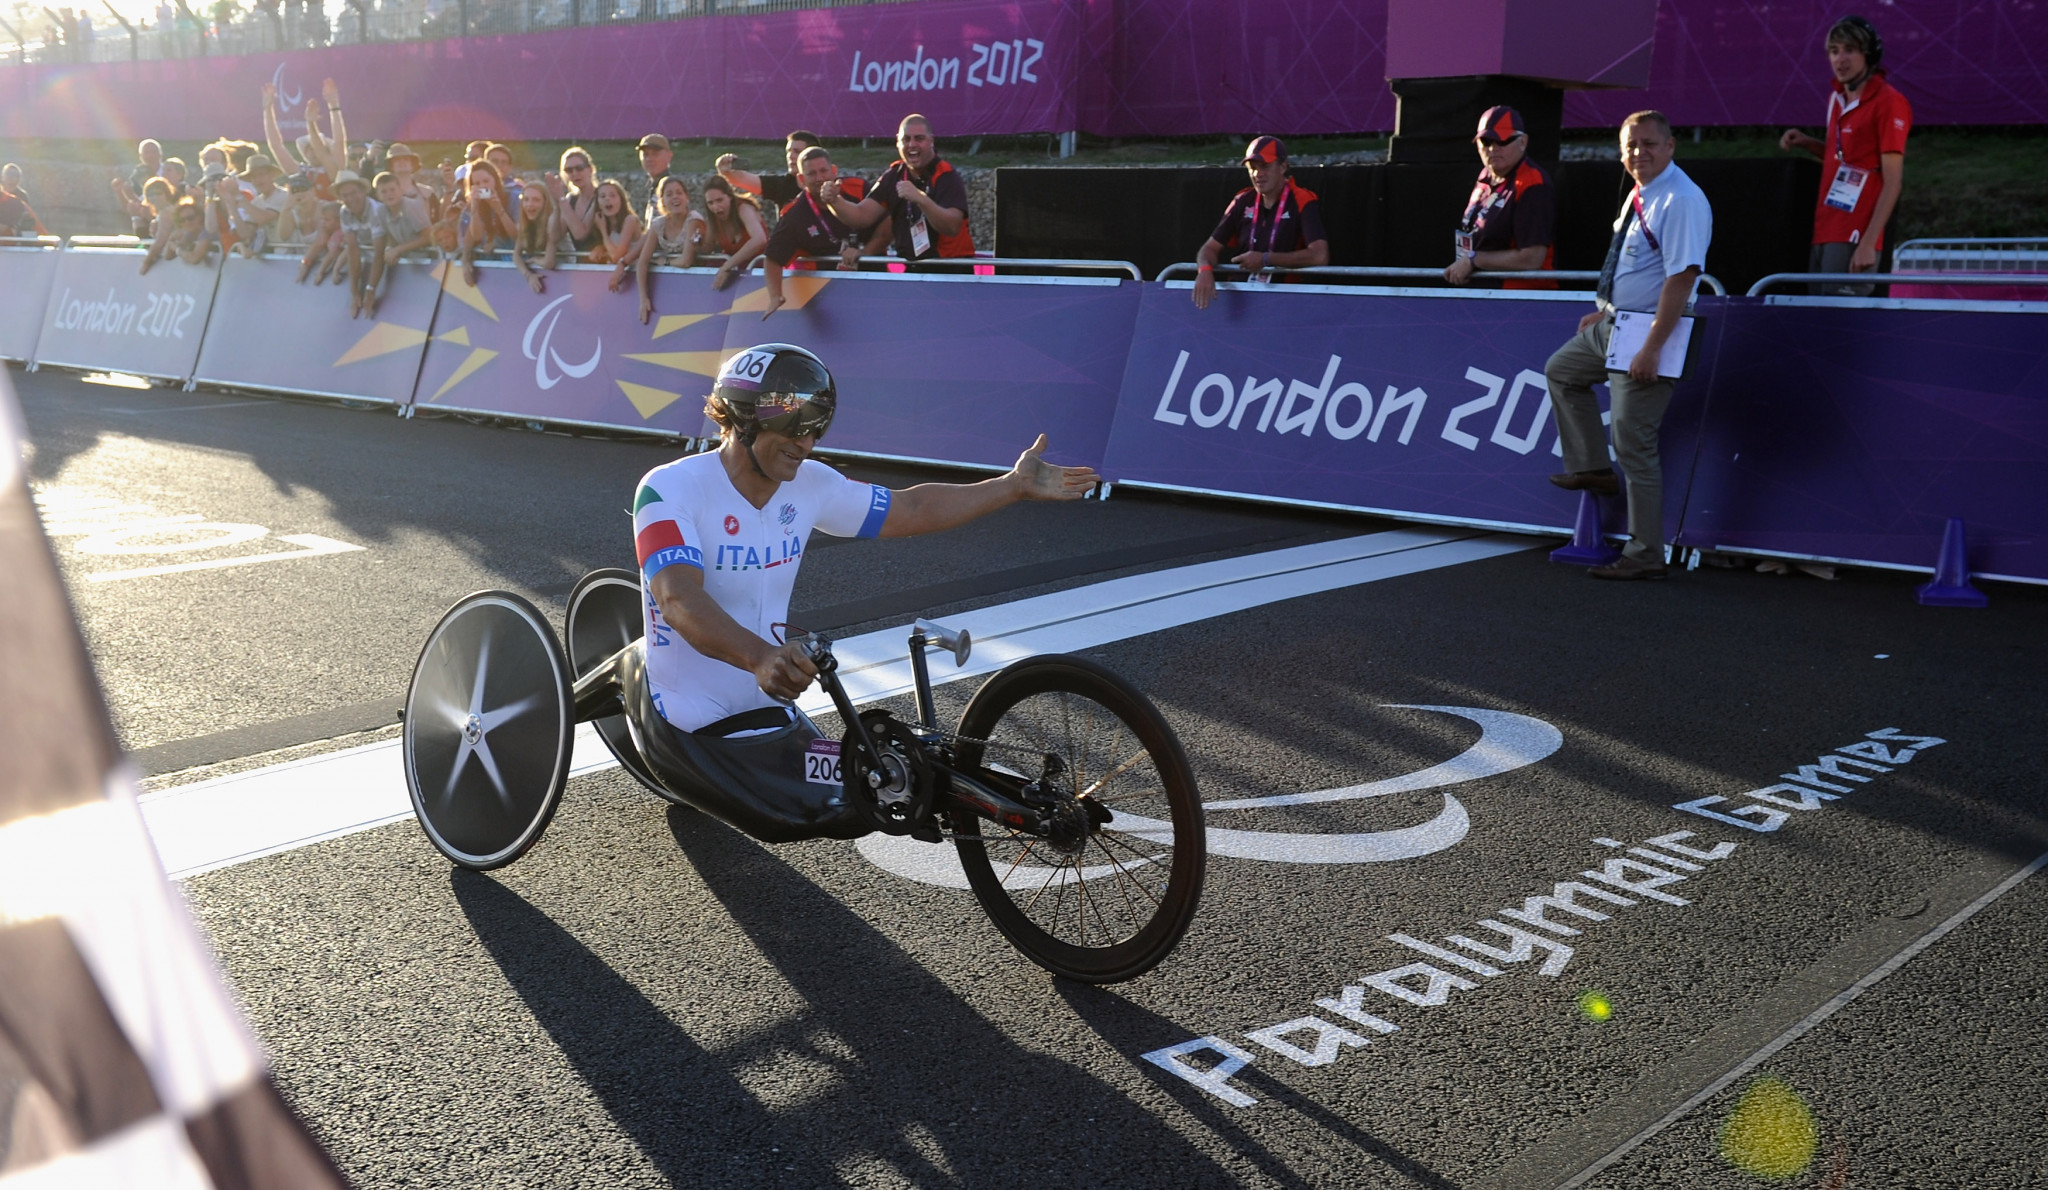 Alex Zanardi earned two gold medals at the London 2012 Olympic Games ©Getty Images